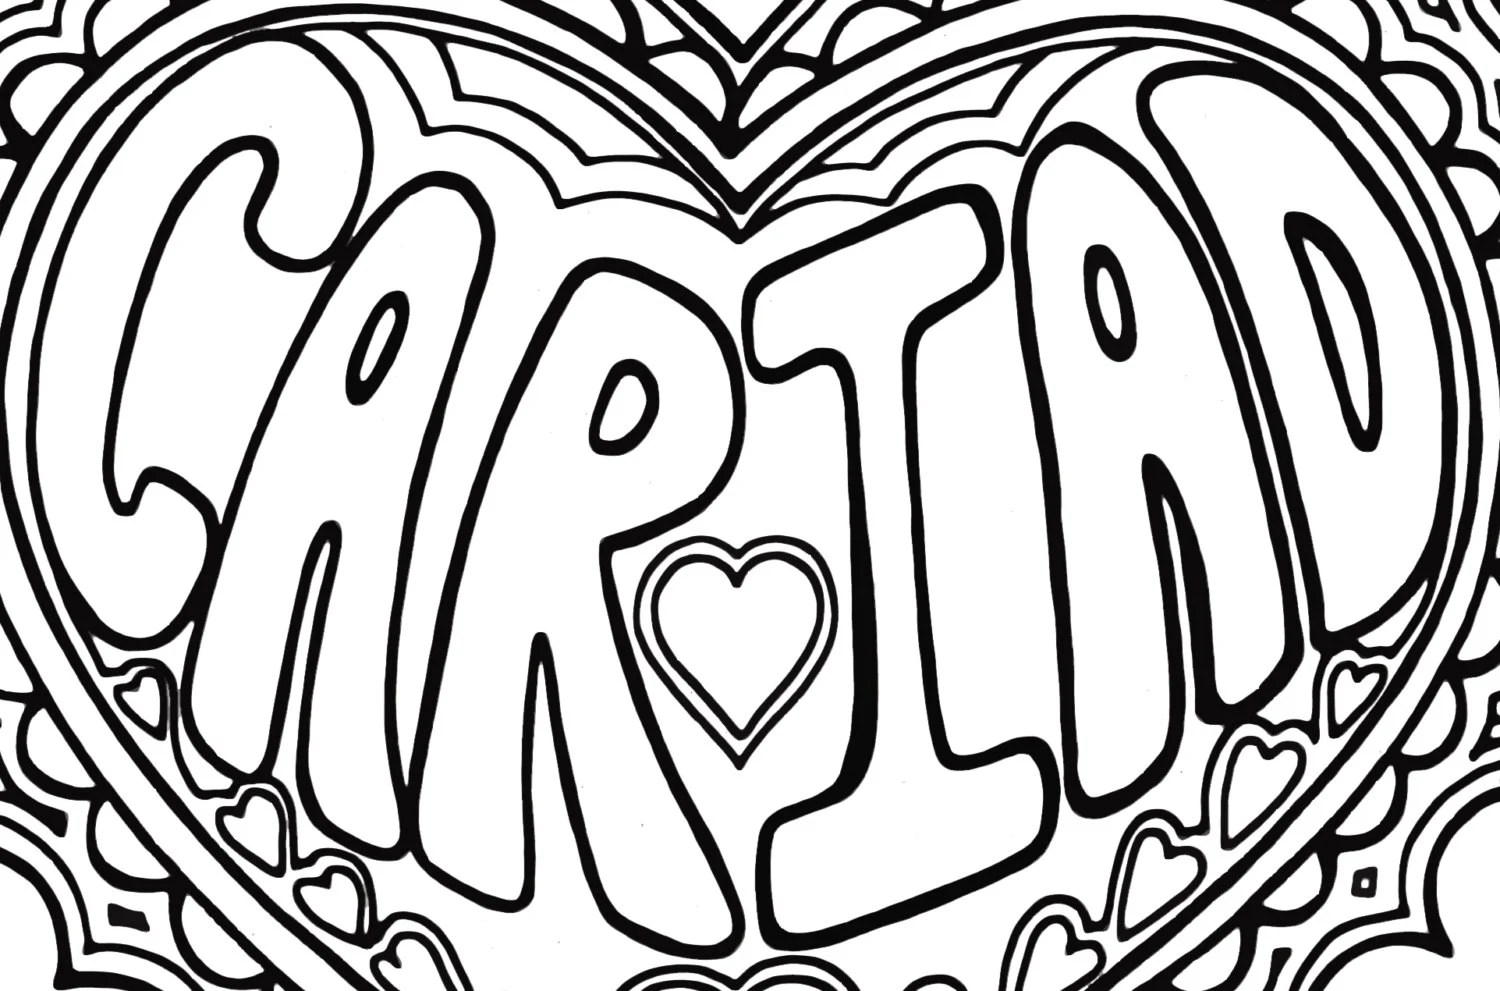 Colouring Page Cariad, Welsh Word, Printable Download